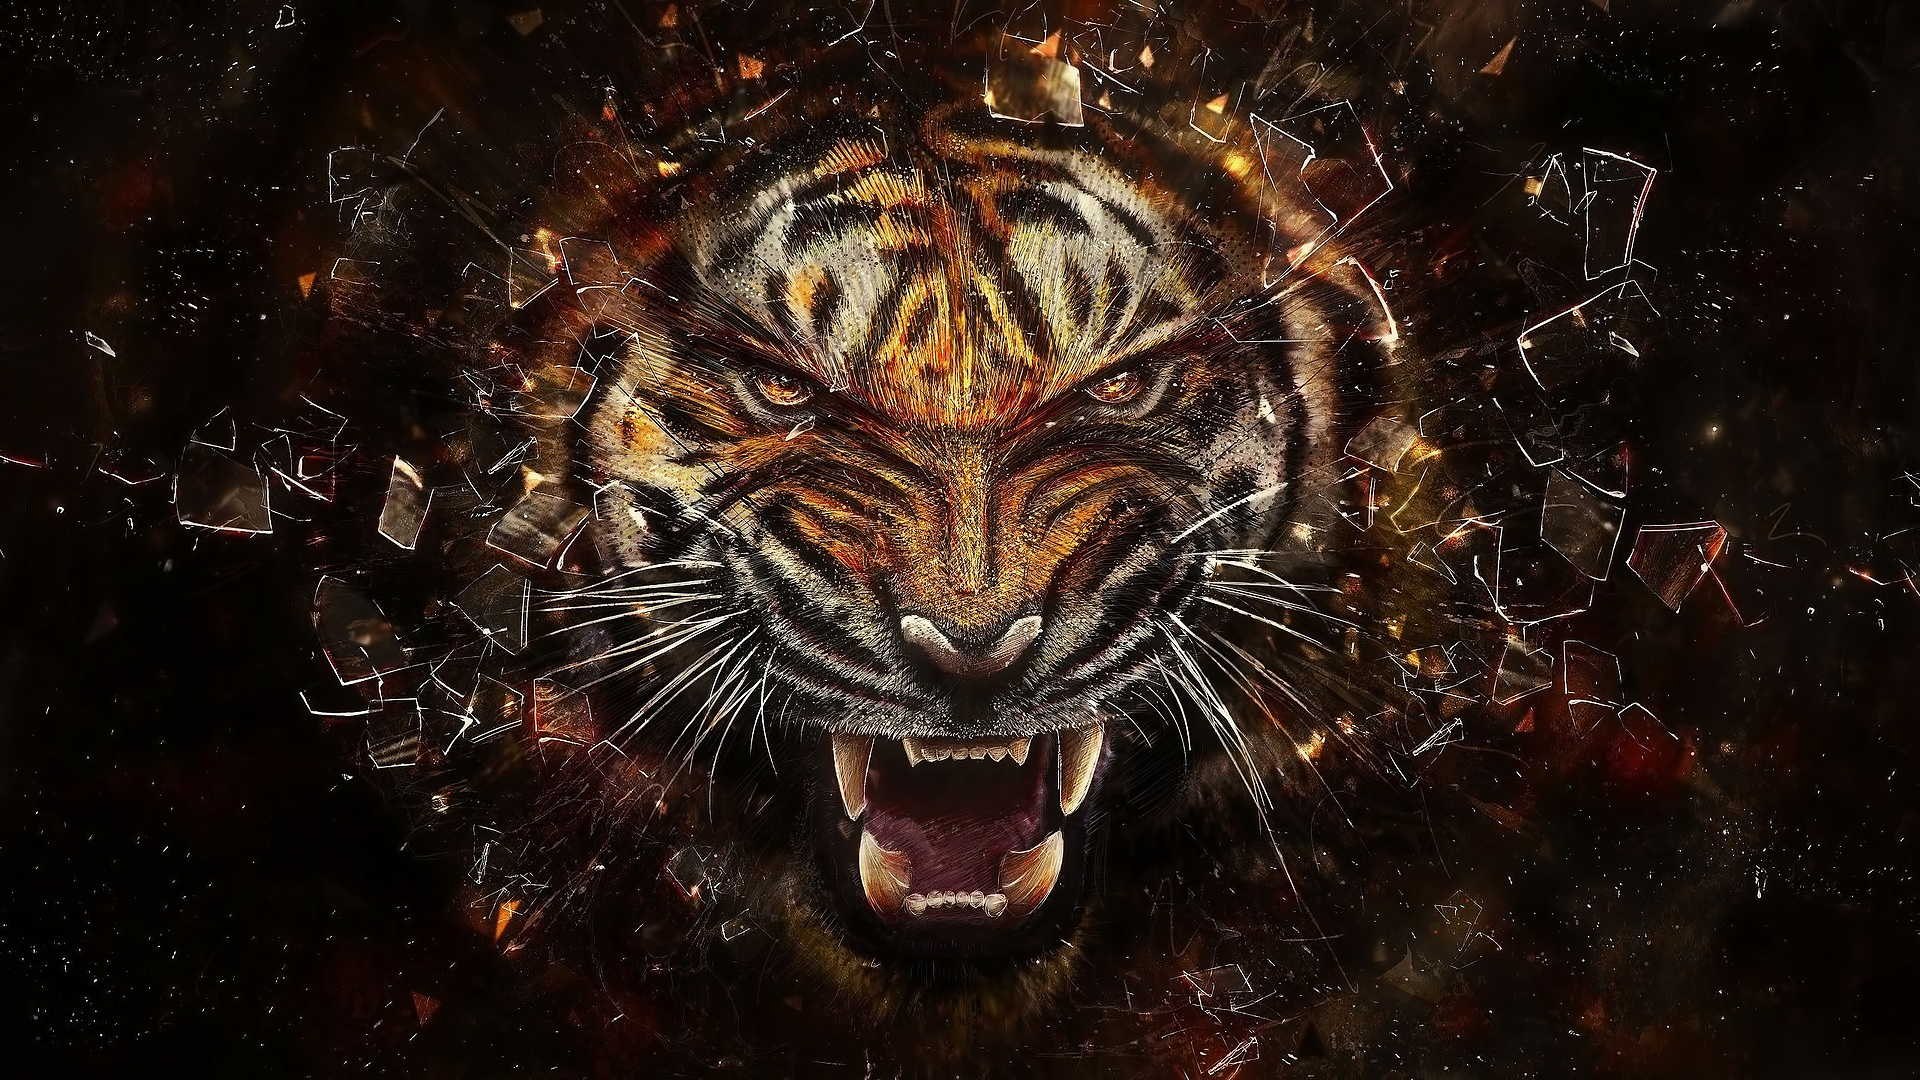 34118 download wallpaper Animals, Tigers, Pictures screensavers and pictures for free